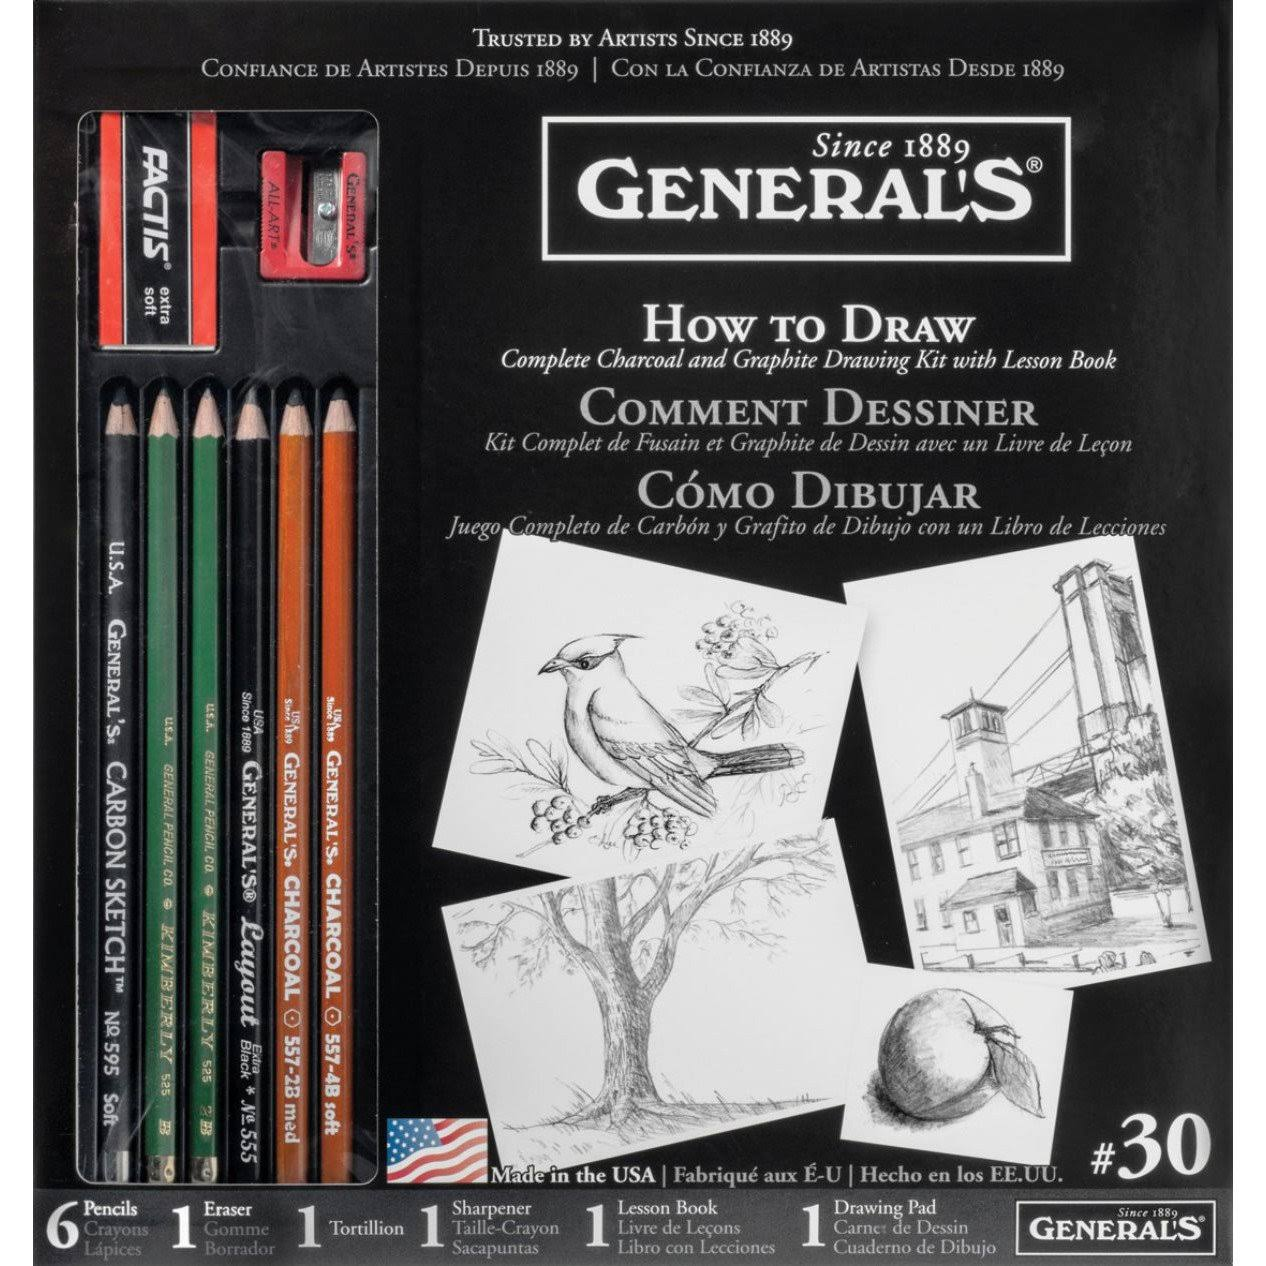 General's Learn to Draw Now Drawing Kit